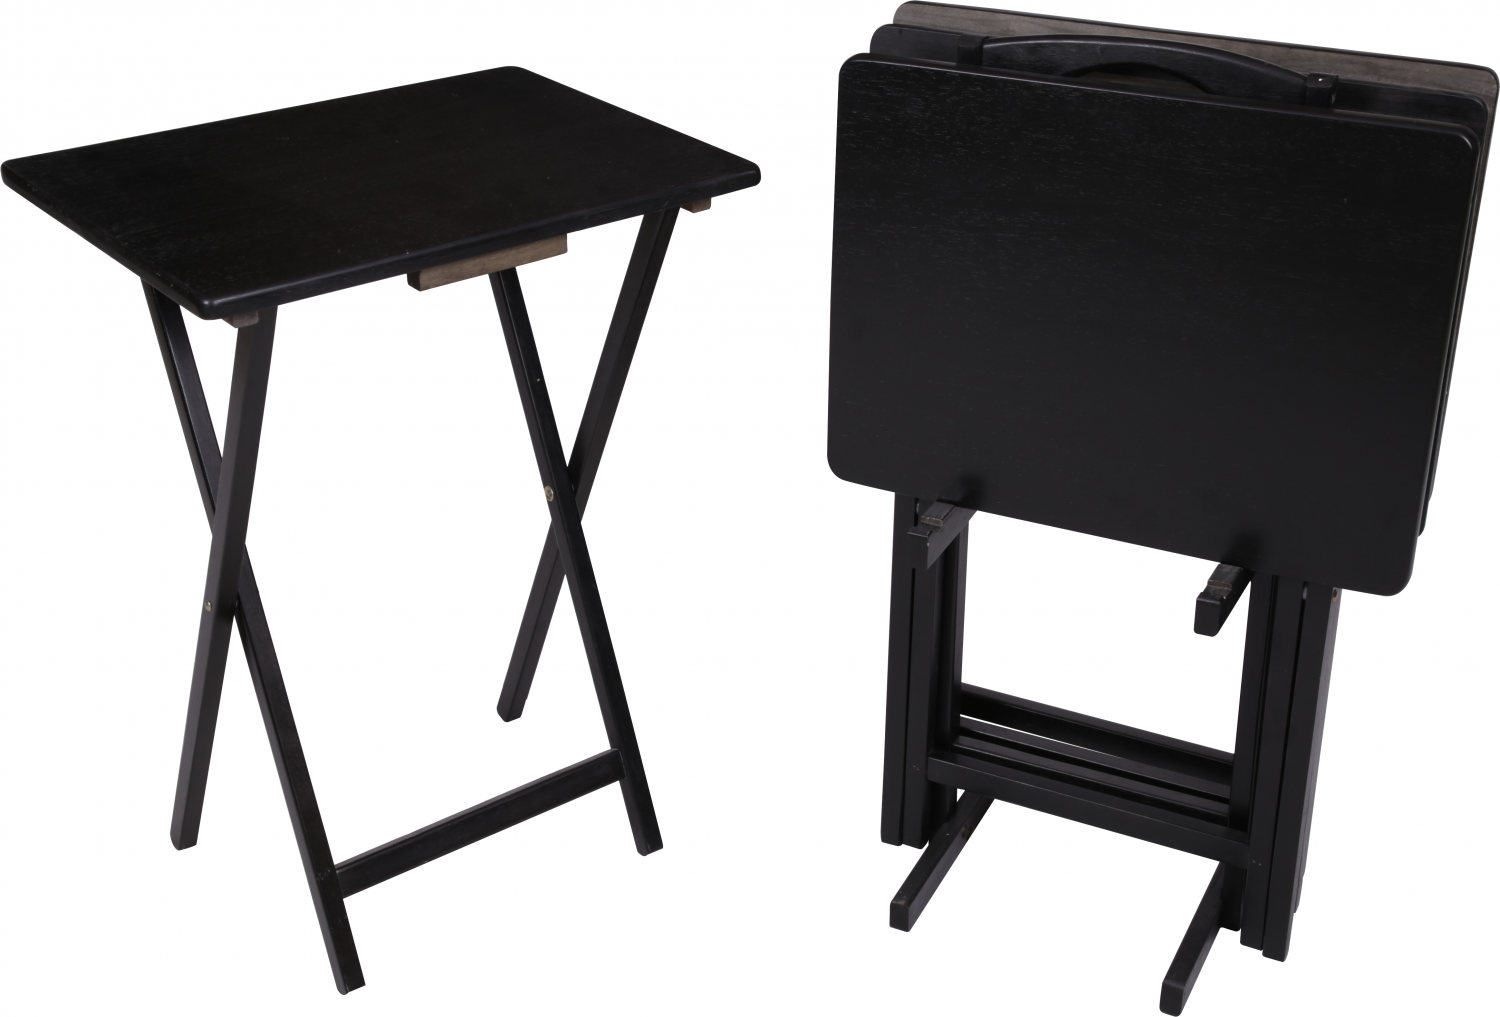 Remarkable Details About 5 Piece Folding Tv 4 Tray Stand Set Wood Dinner Black Side Table Easy Clean Spiritservingveterans Wood Chair Design Ideas Spiritservingveteransorg